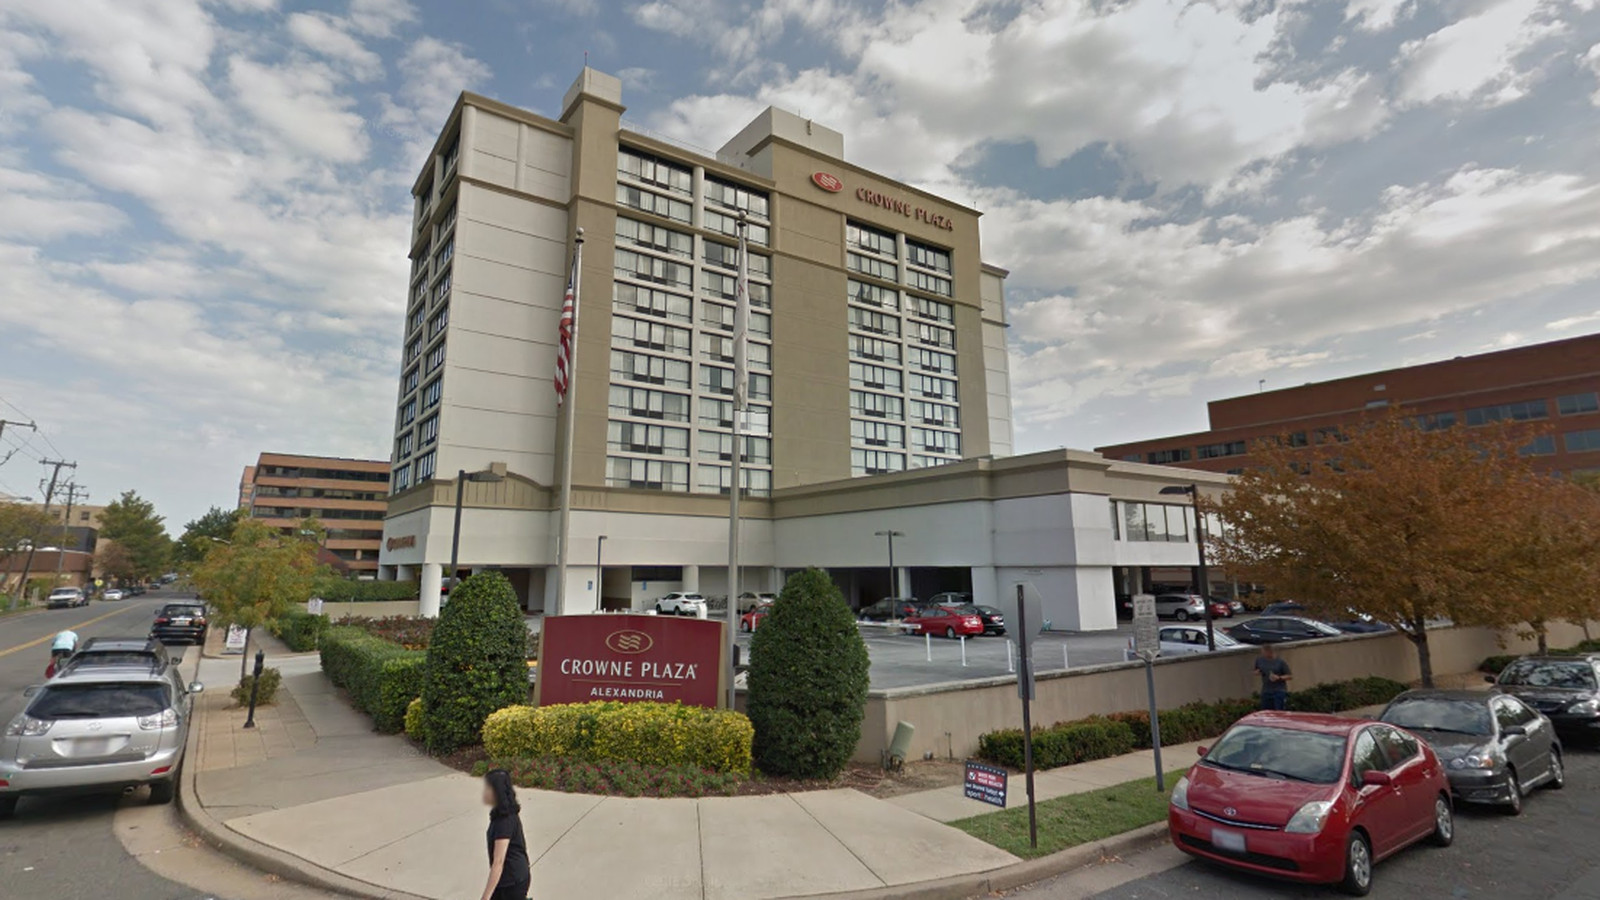 Crowne Plaza Detroit Alexandria Hotel May Be Redeveloped With Townhouses Arts